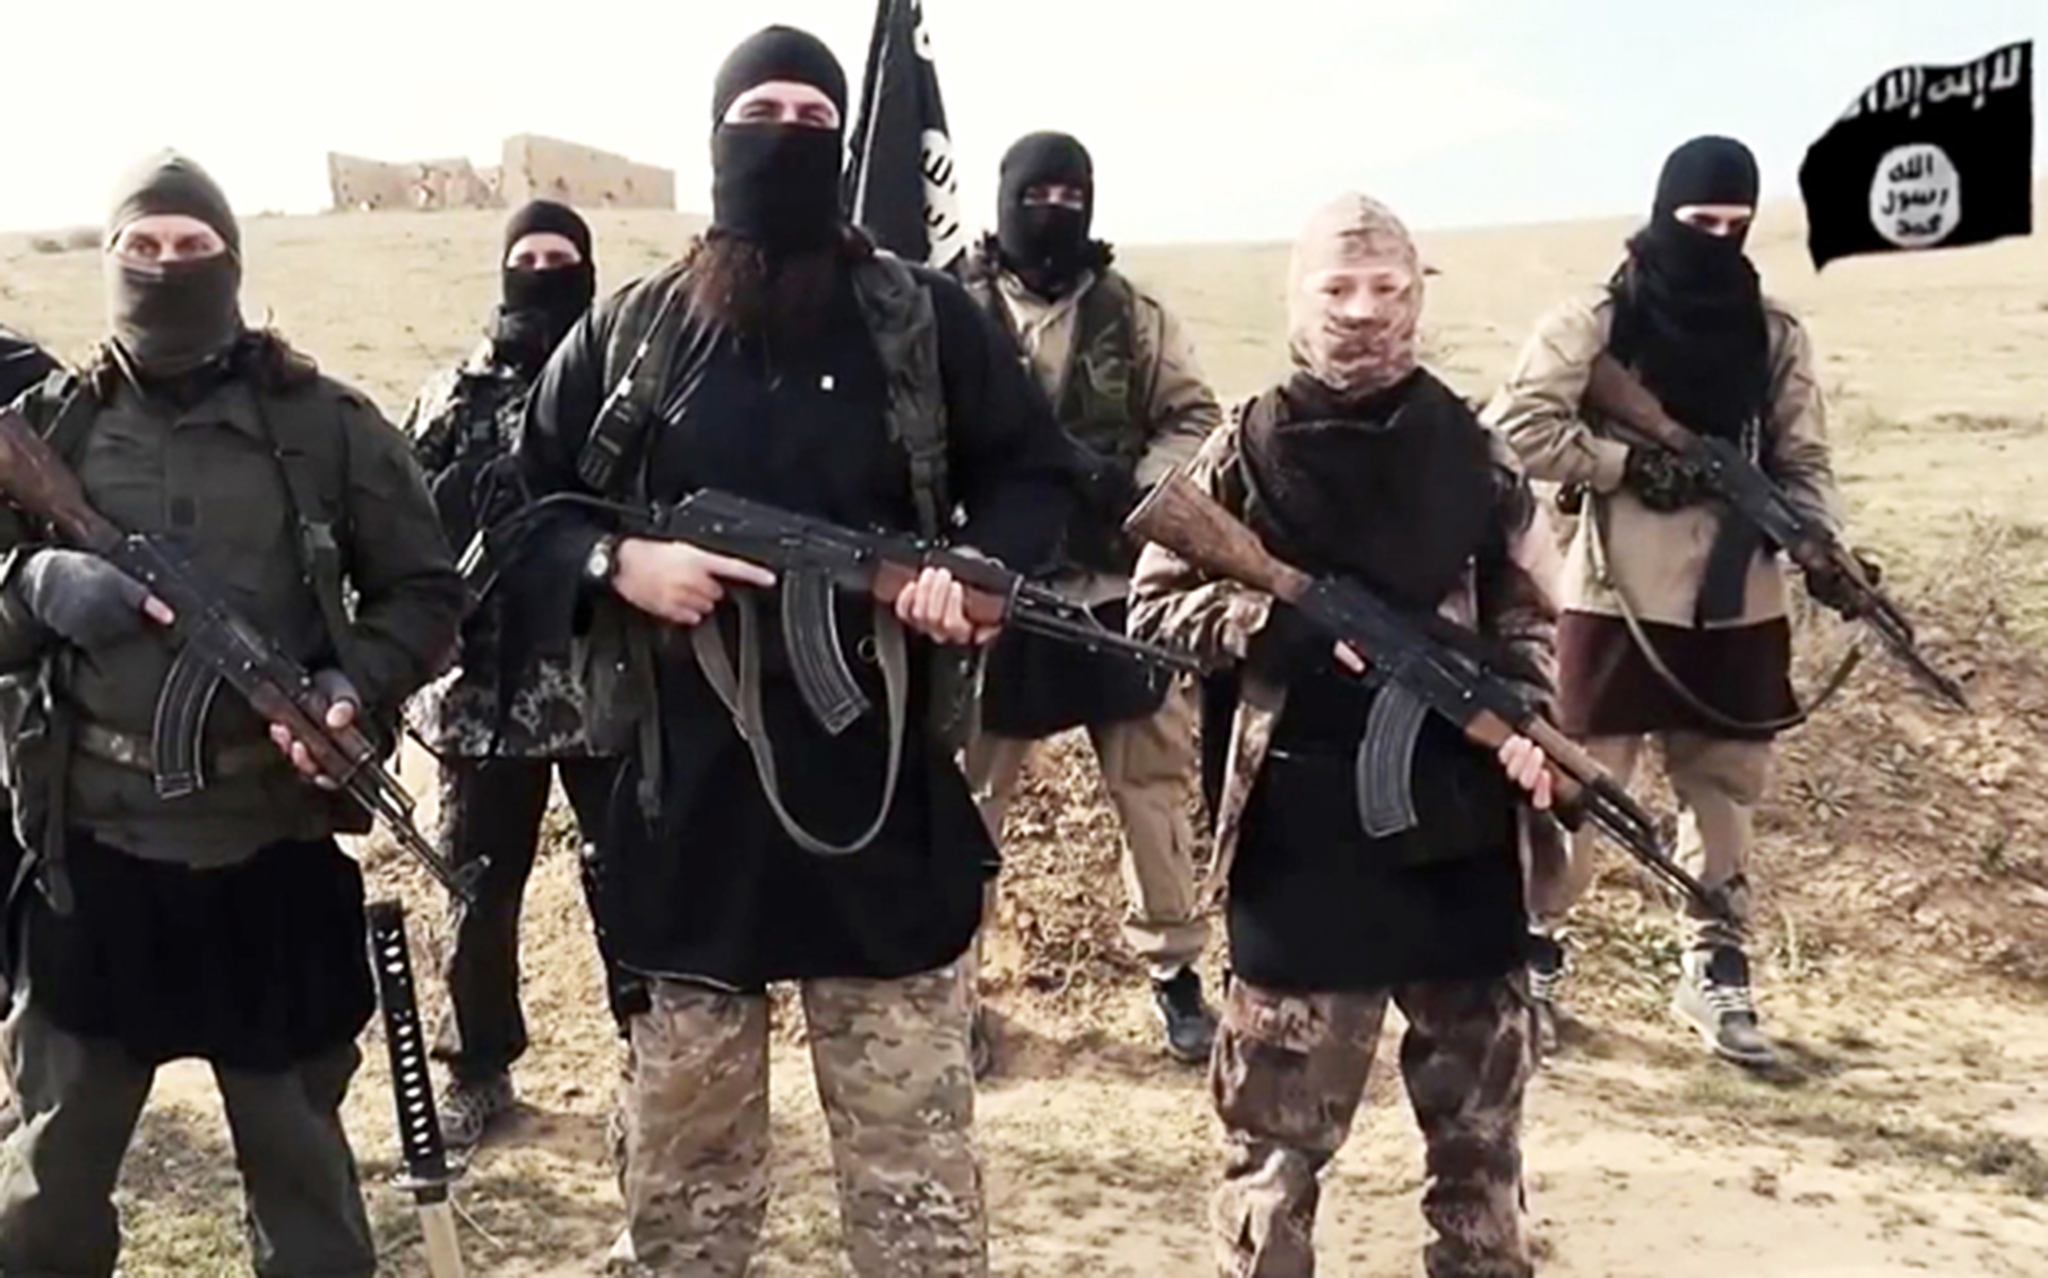 isis 2 Former ISIS Fighter Has This Poignant Warning For Britain